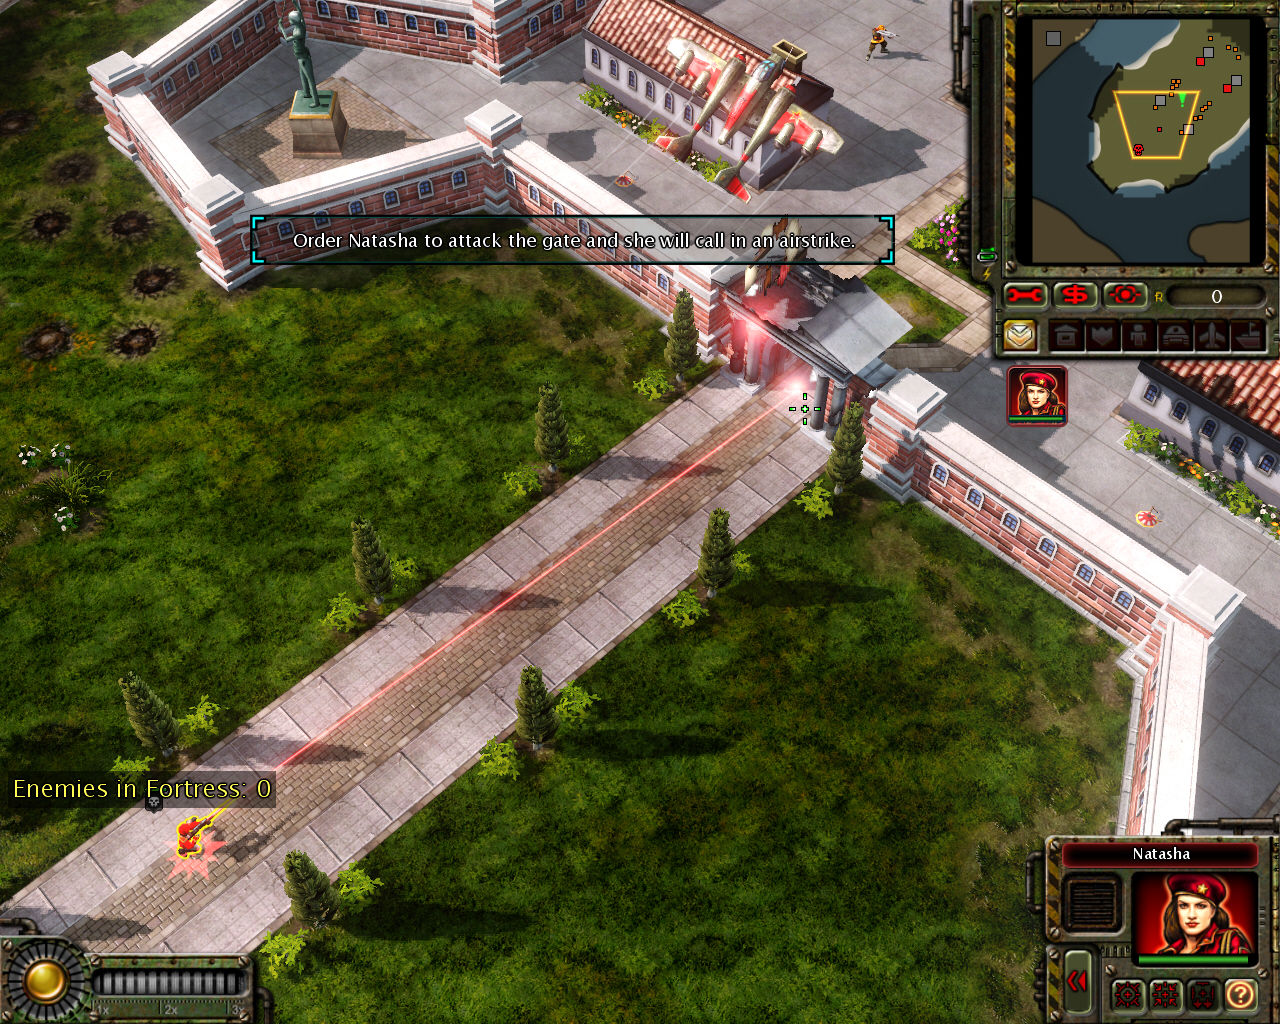 Command & Conquer: Red Alert 3 Windows Natasha can order air strikes.